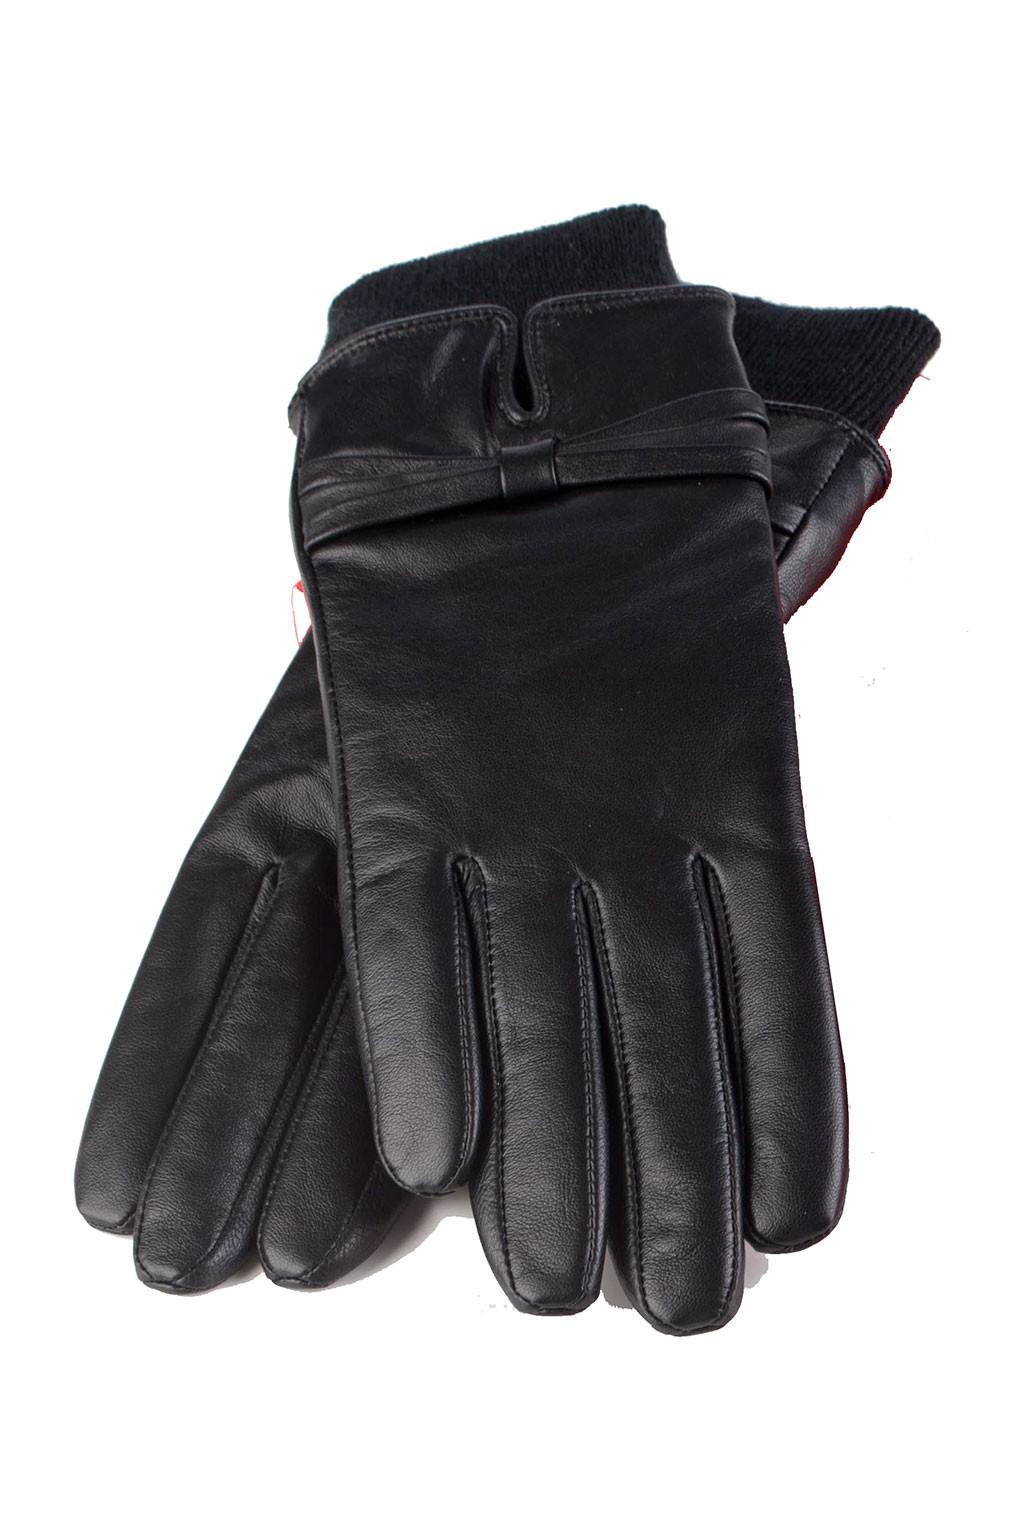 Ladies leather gloves large - Ladies Leather Gloves